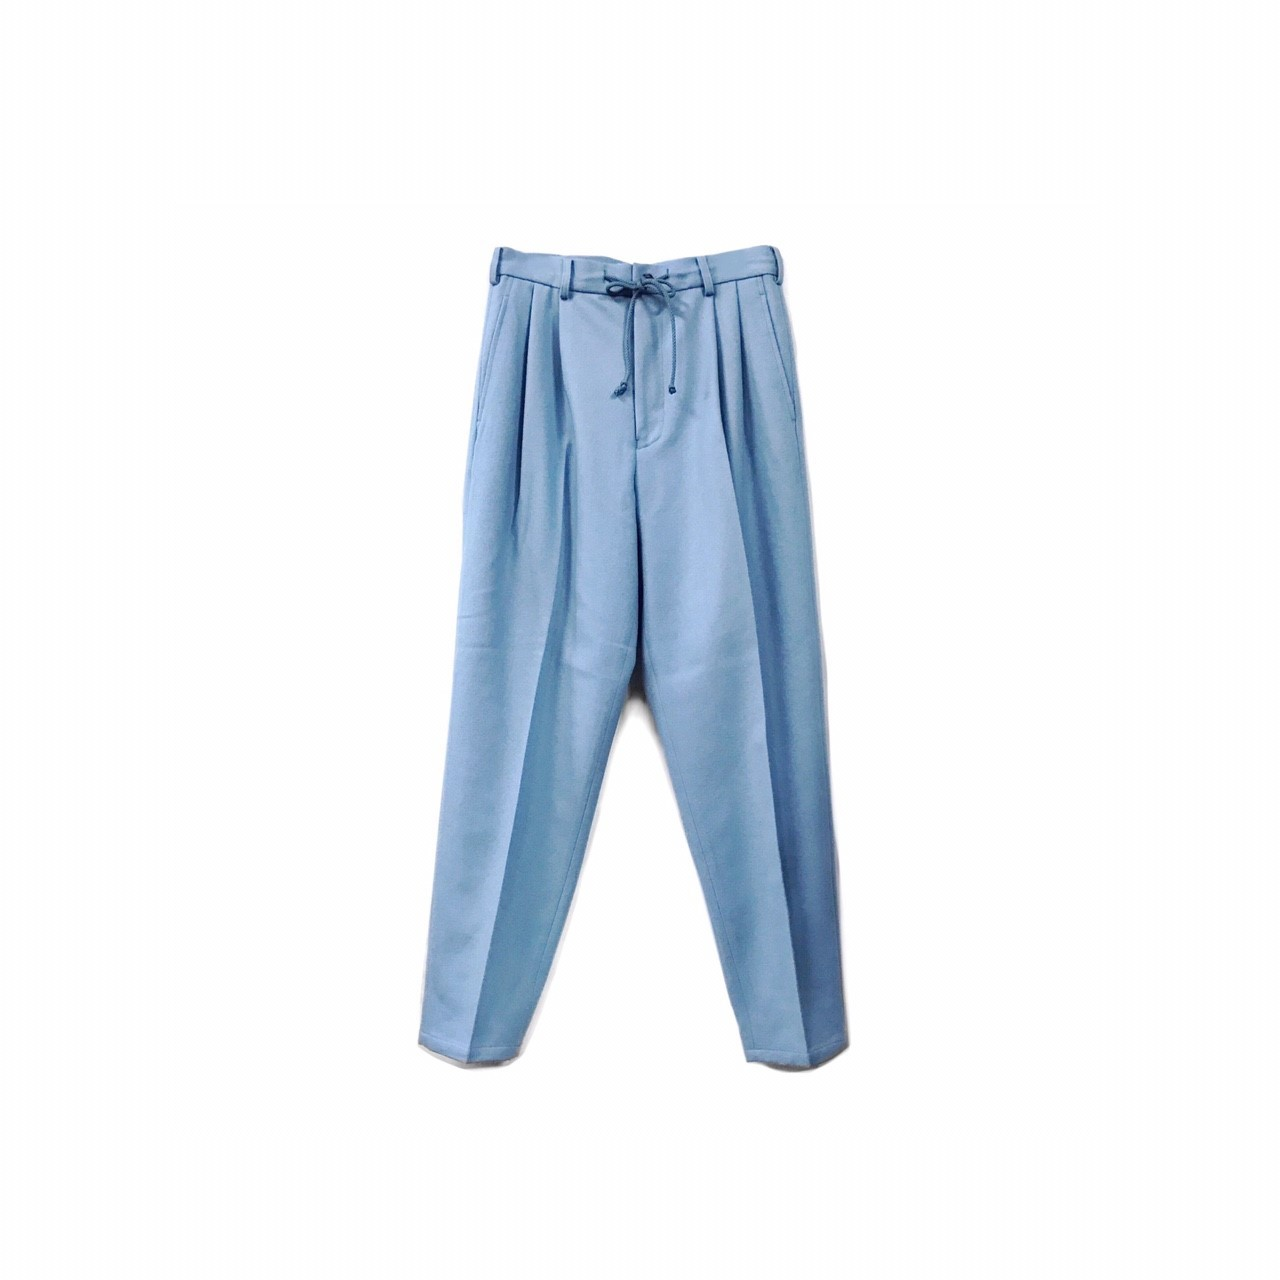 yotsuba - Wide Slacks / Light Blue ¥21000+tax